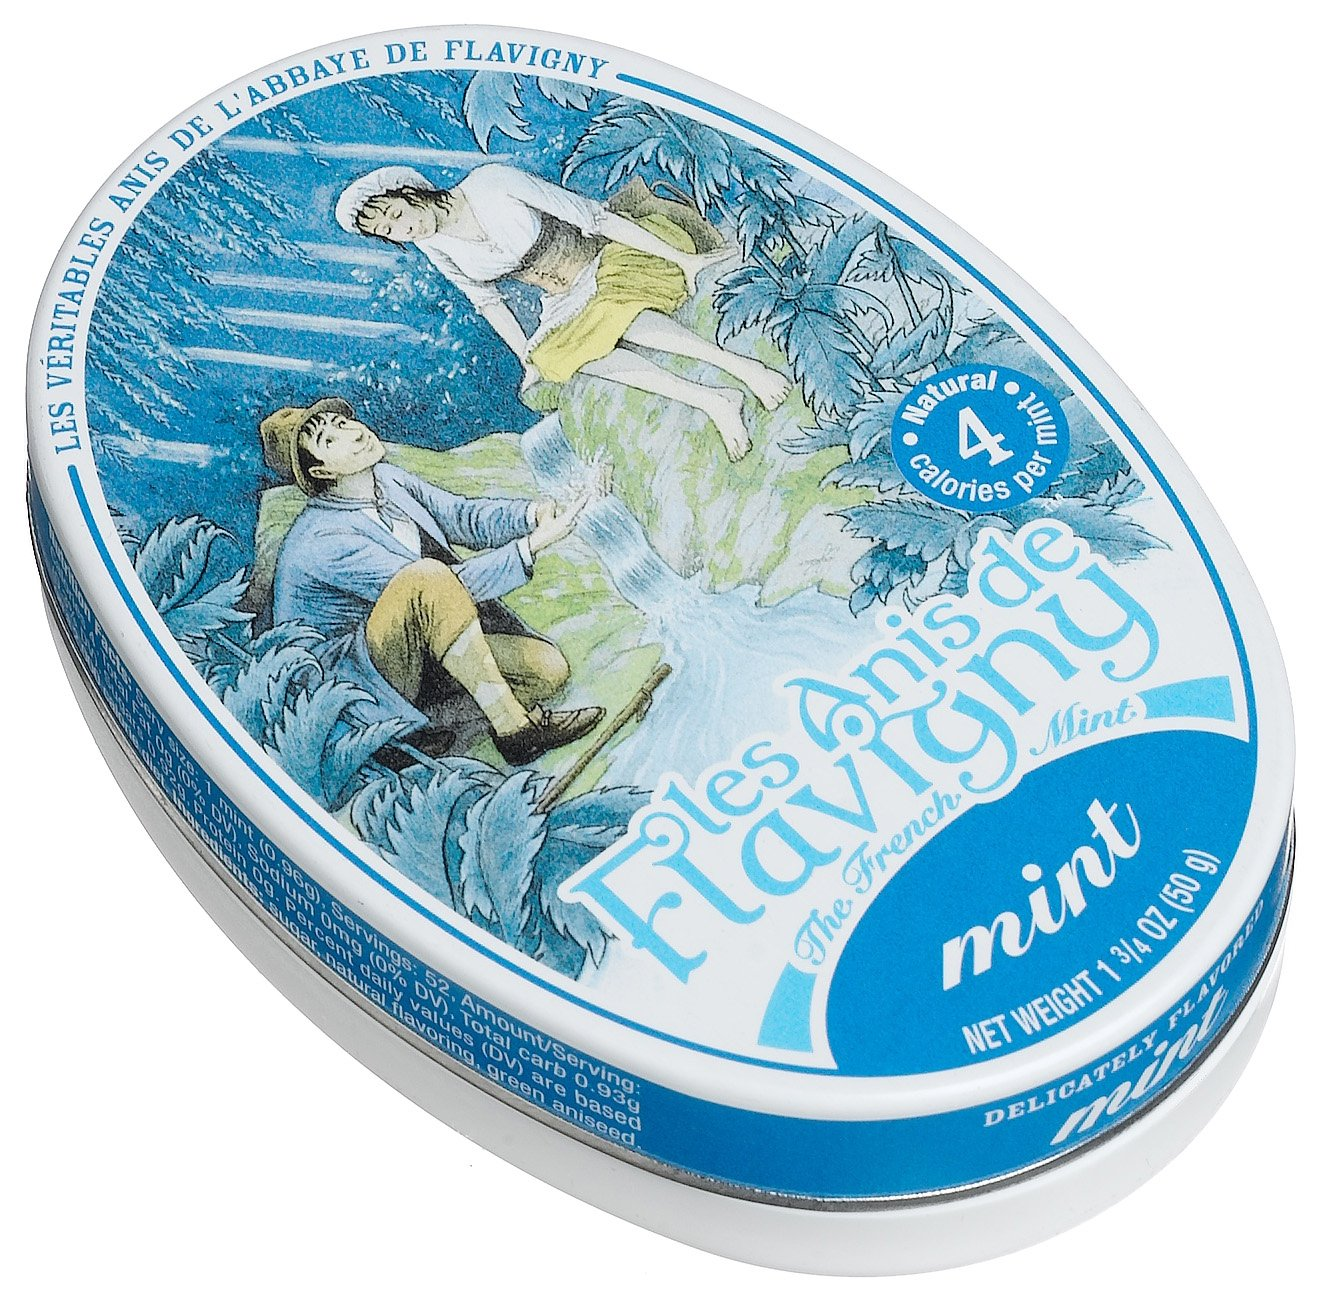 Les Anis De Flavigny, Mint (French Mints), 1.75-Ounce Tins (Pack of 8) by Anis